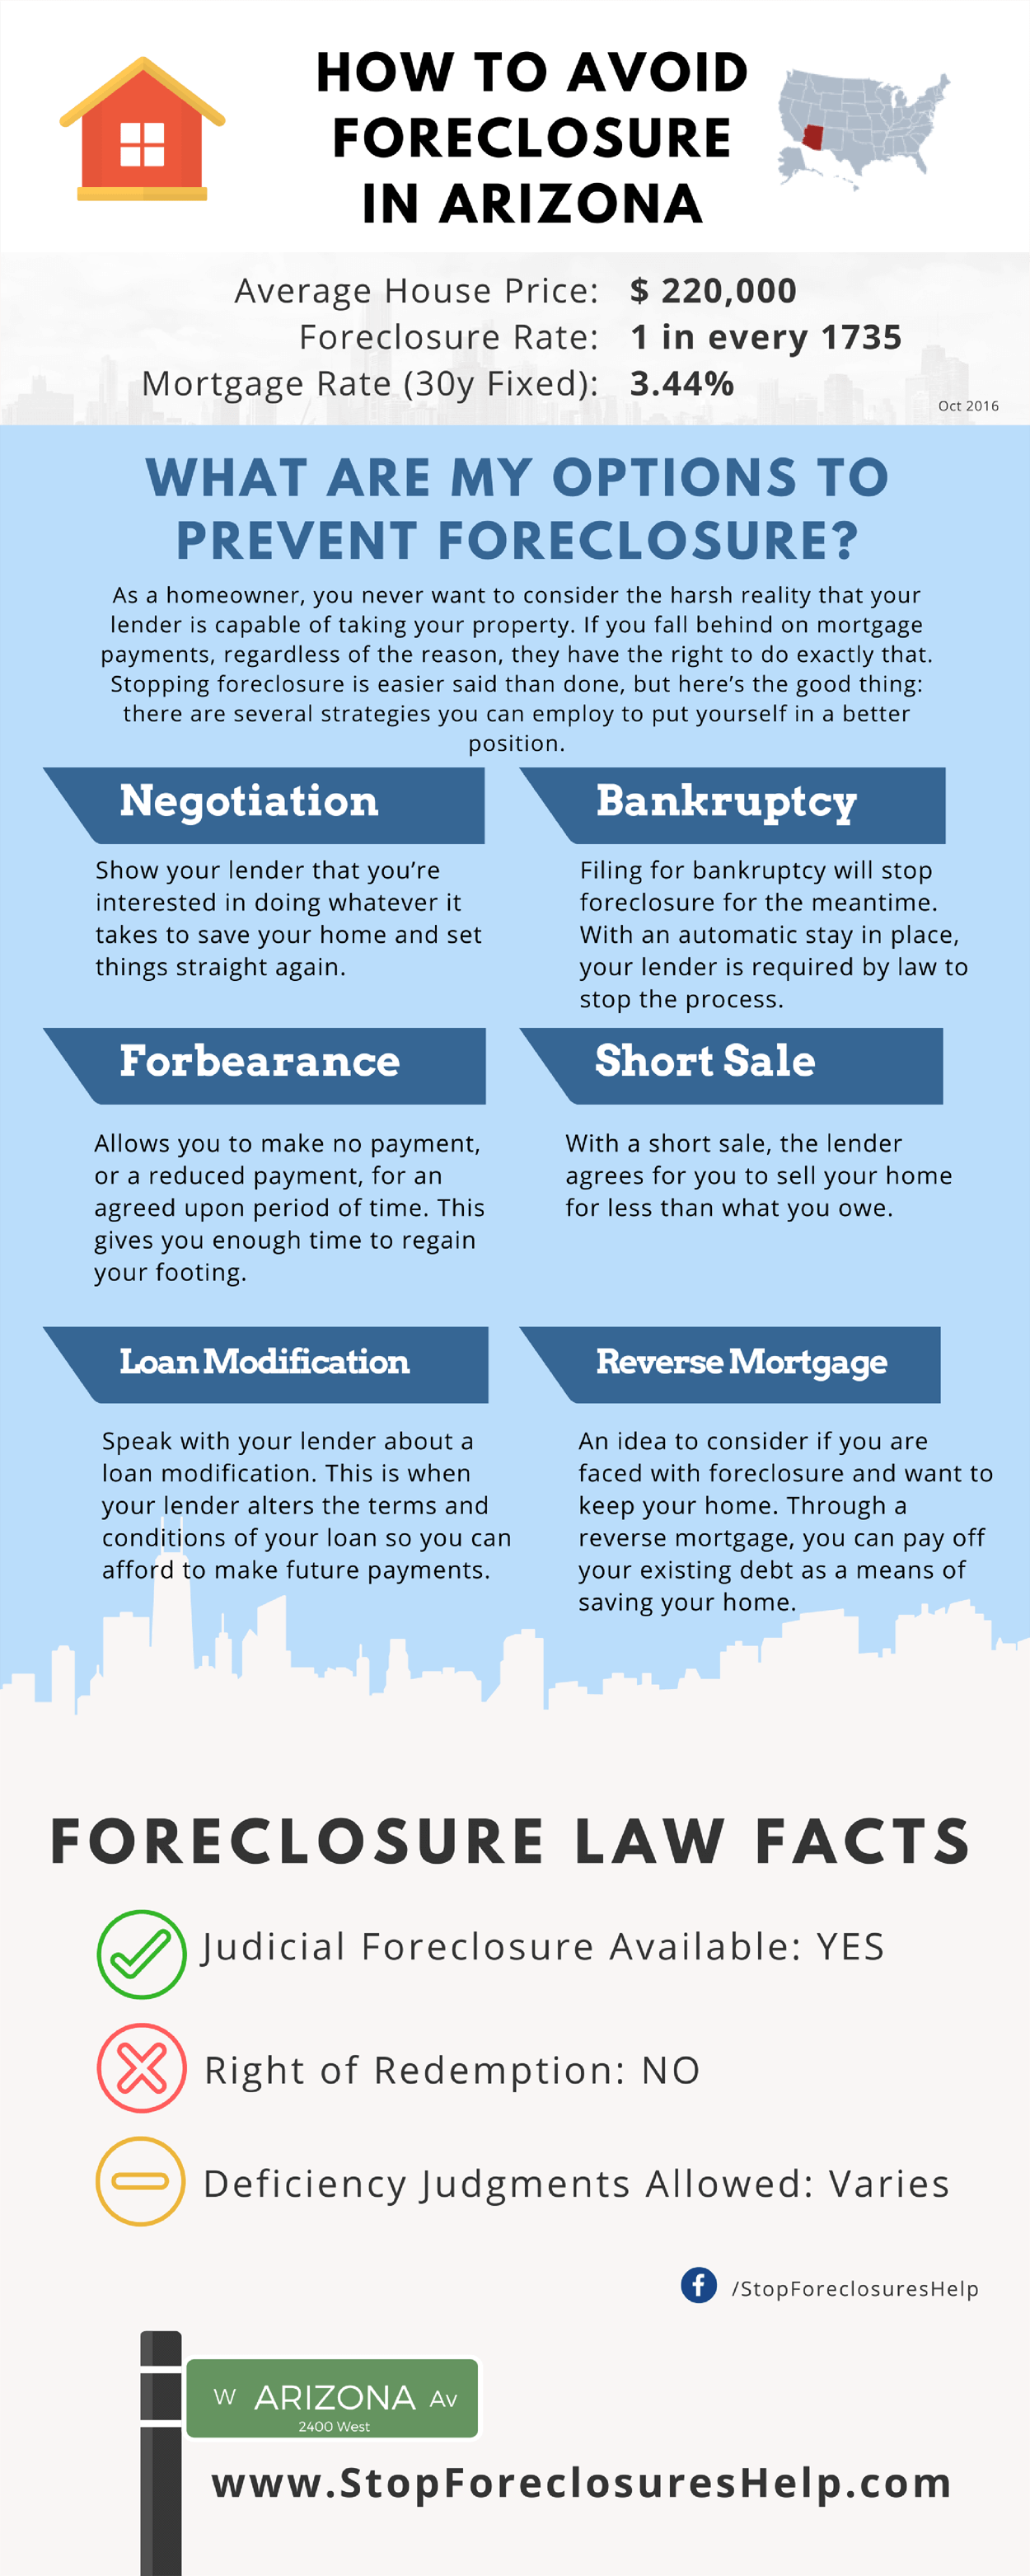 how-to-avoid-foreclosure-in-arizona-infographic-plaza